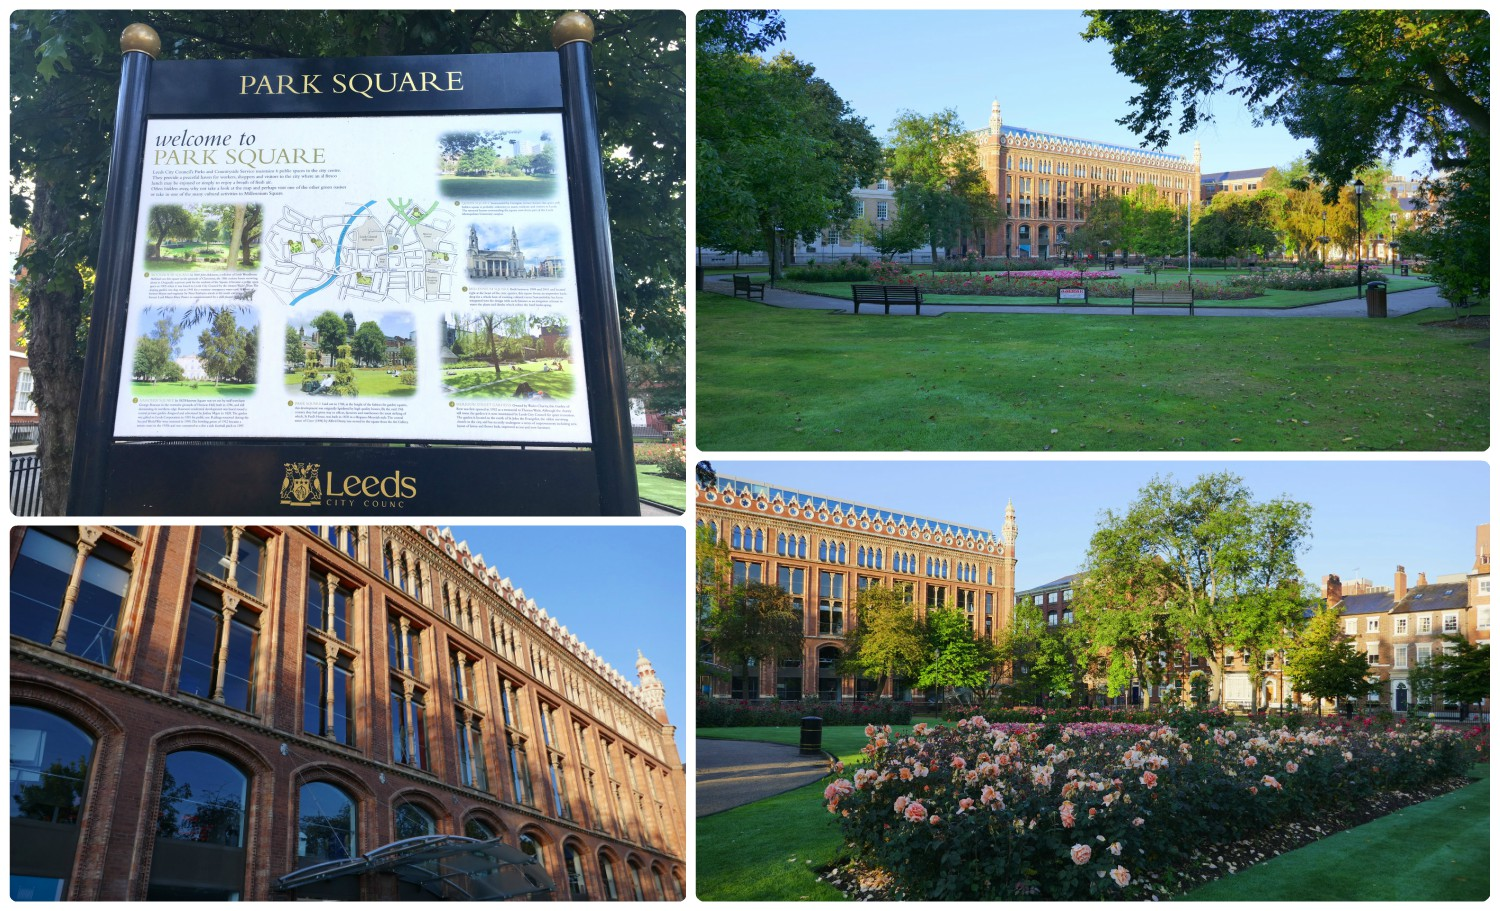 Park Square is a wonderful garden that's an escape from the busy city that surrounds it!